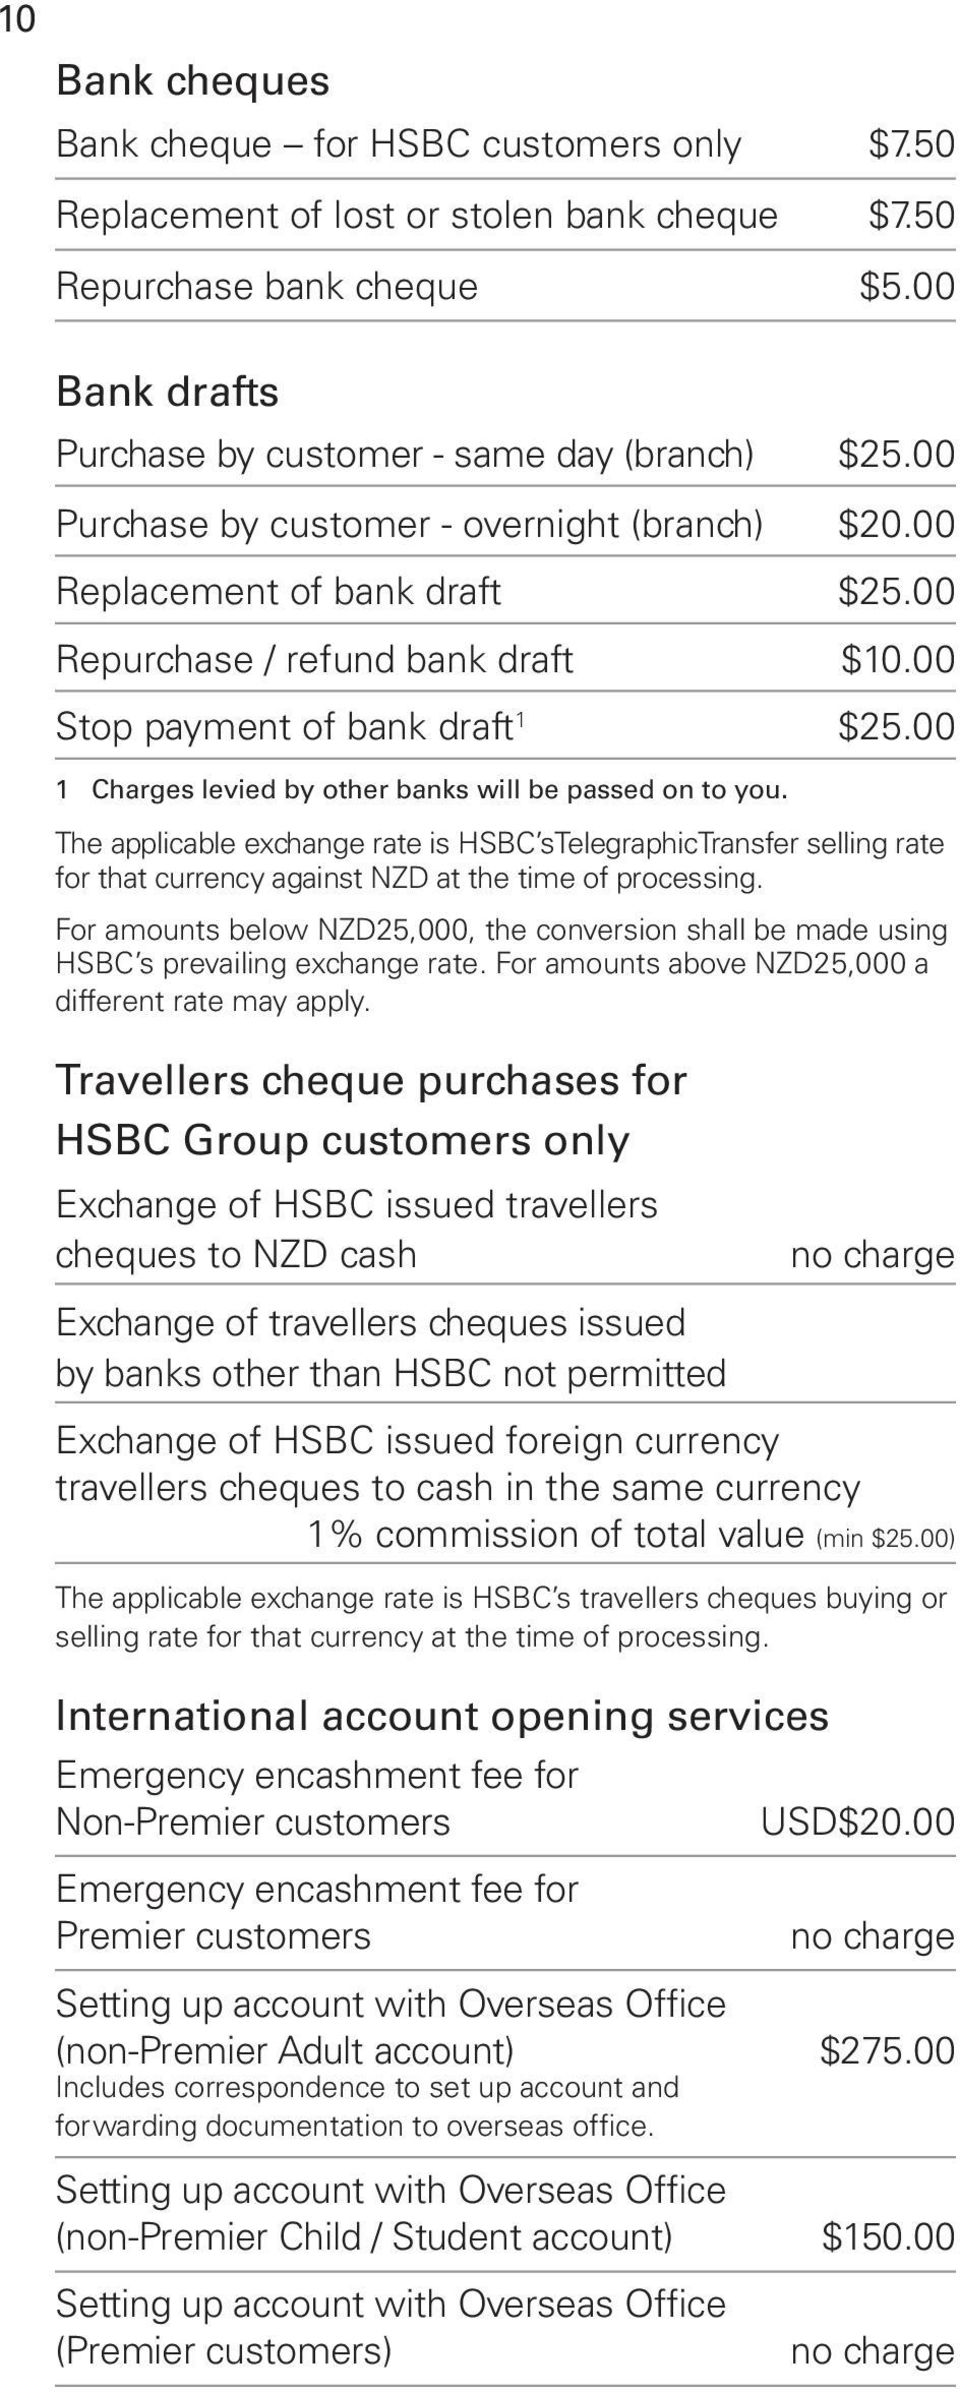 00 1 Charges levied by other banks will be passed on to you. The applicable exchange rate is HSBC stelegraphictransfer selling rate for that currency against NZD at the time of processing.